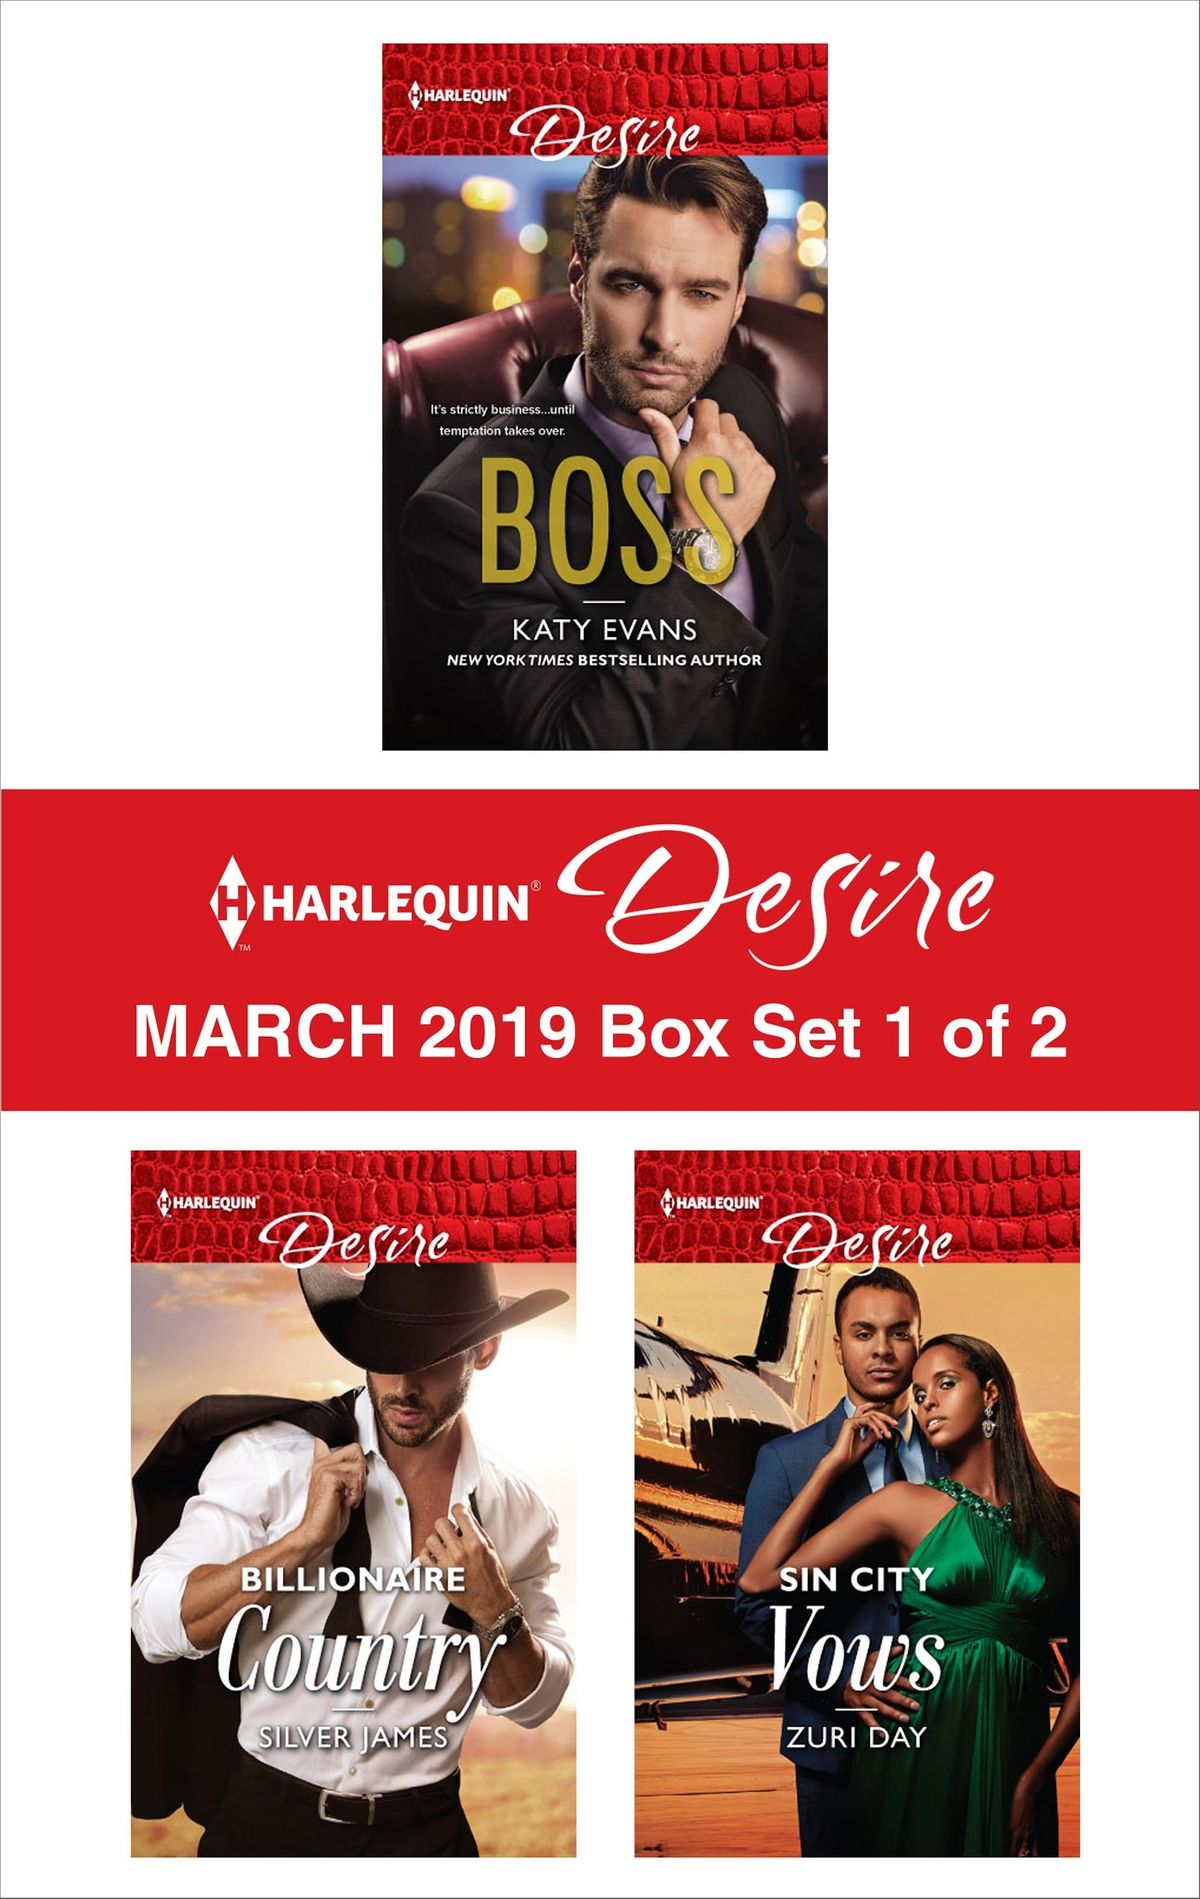 Harlequin Desire March 2019 - Box Set 1 of 2 - eBook ...